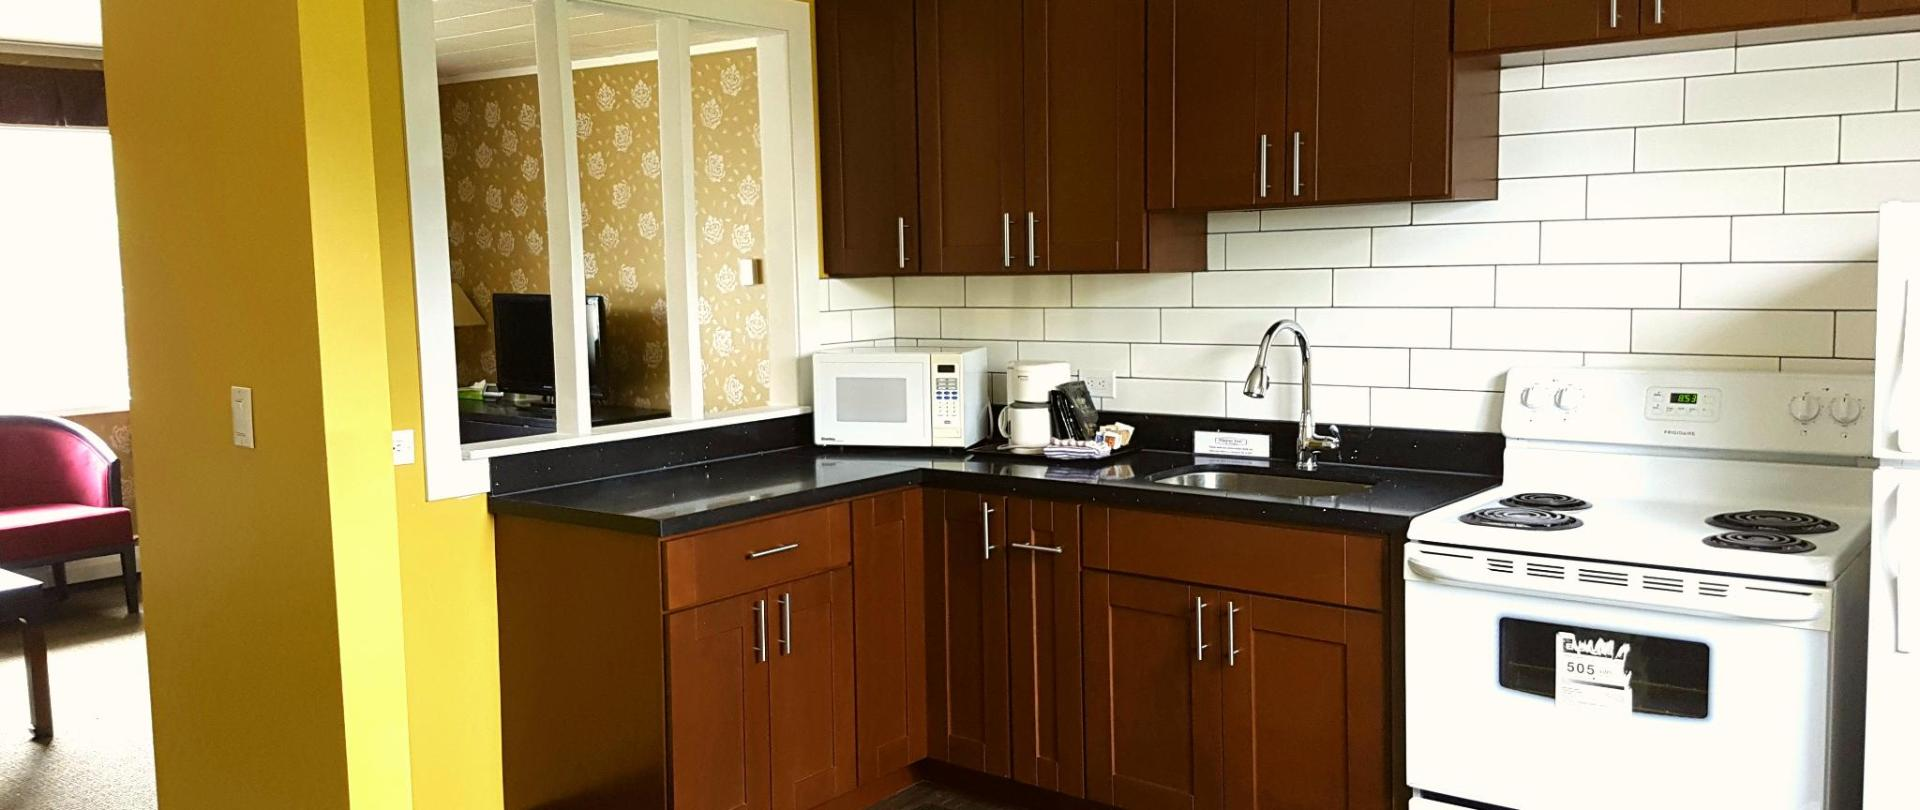 Two Bedroom Kitchen Suite - Kitchen 1.jpg